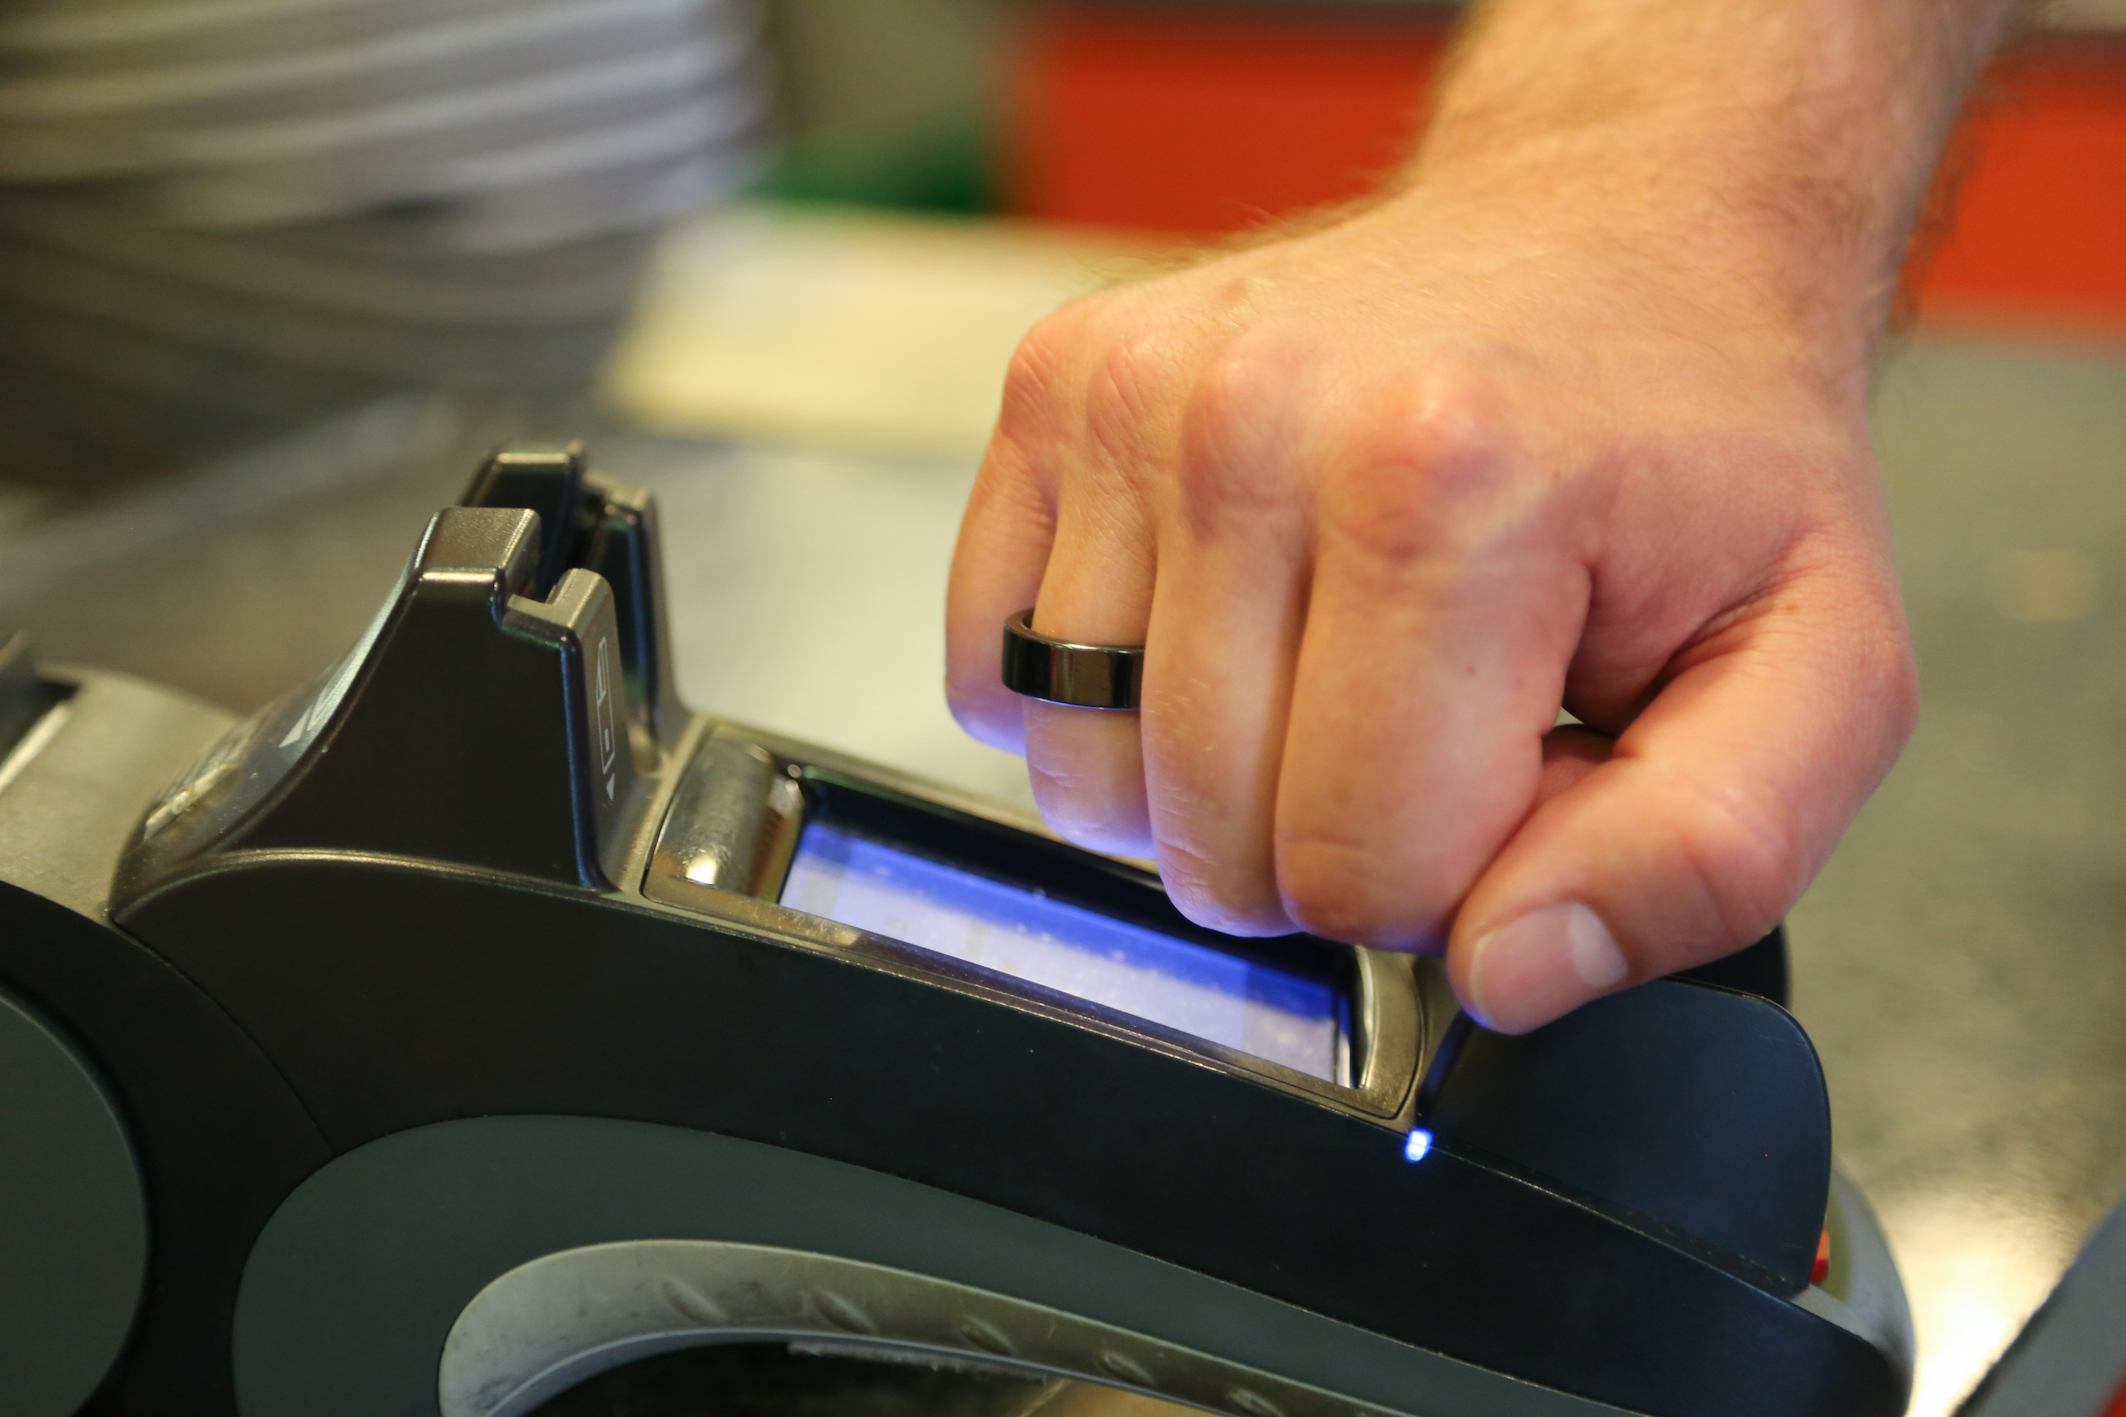 Infineon Enables Nfc Payment Ring